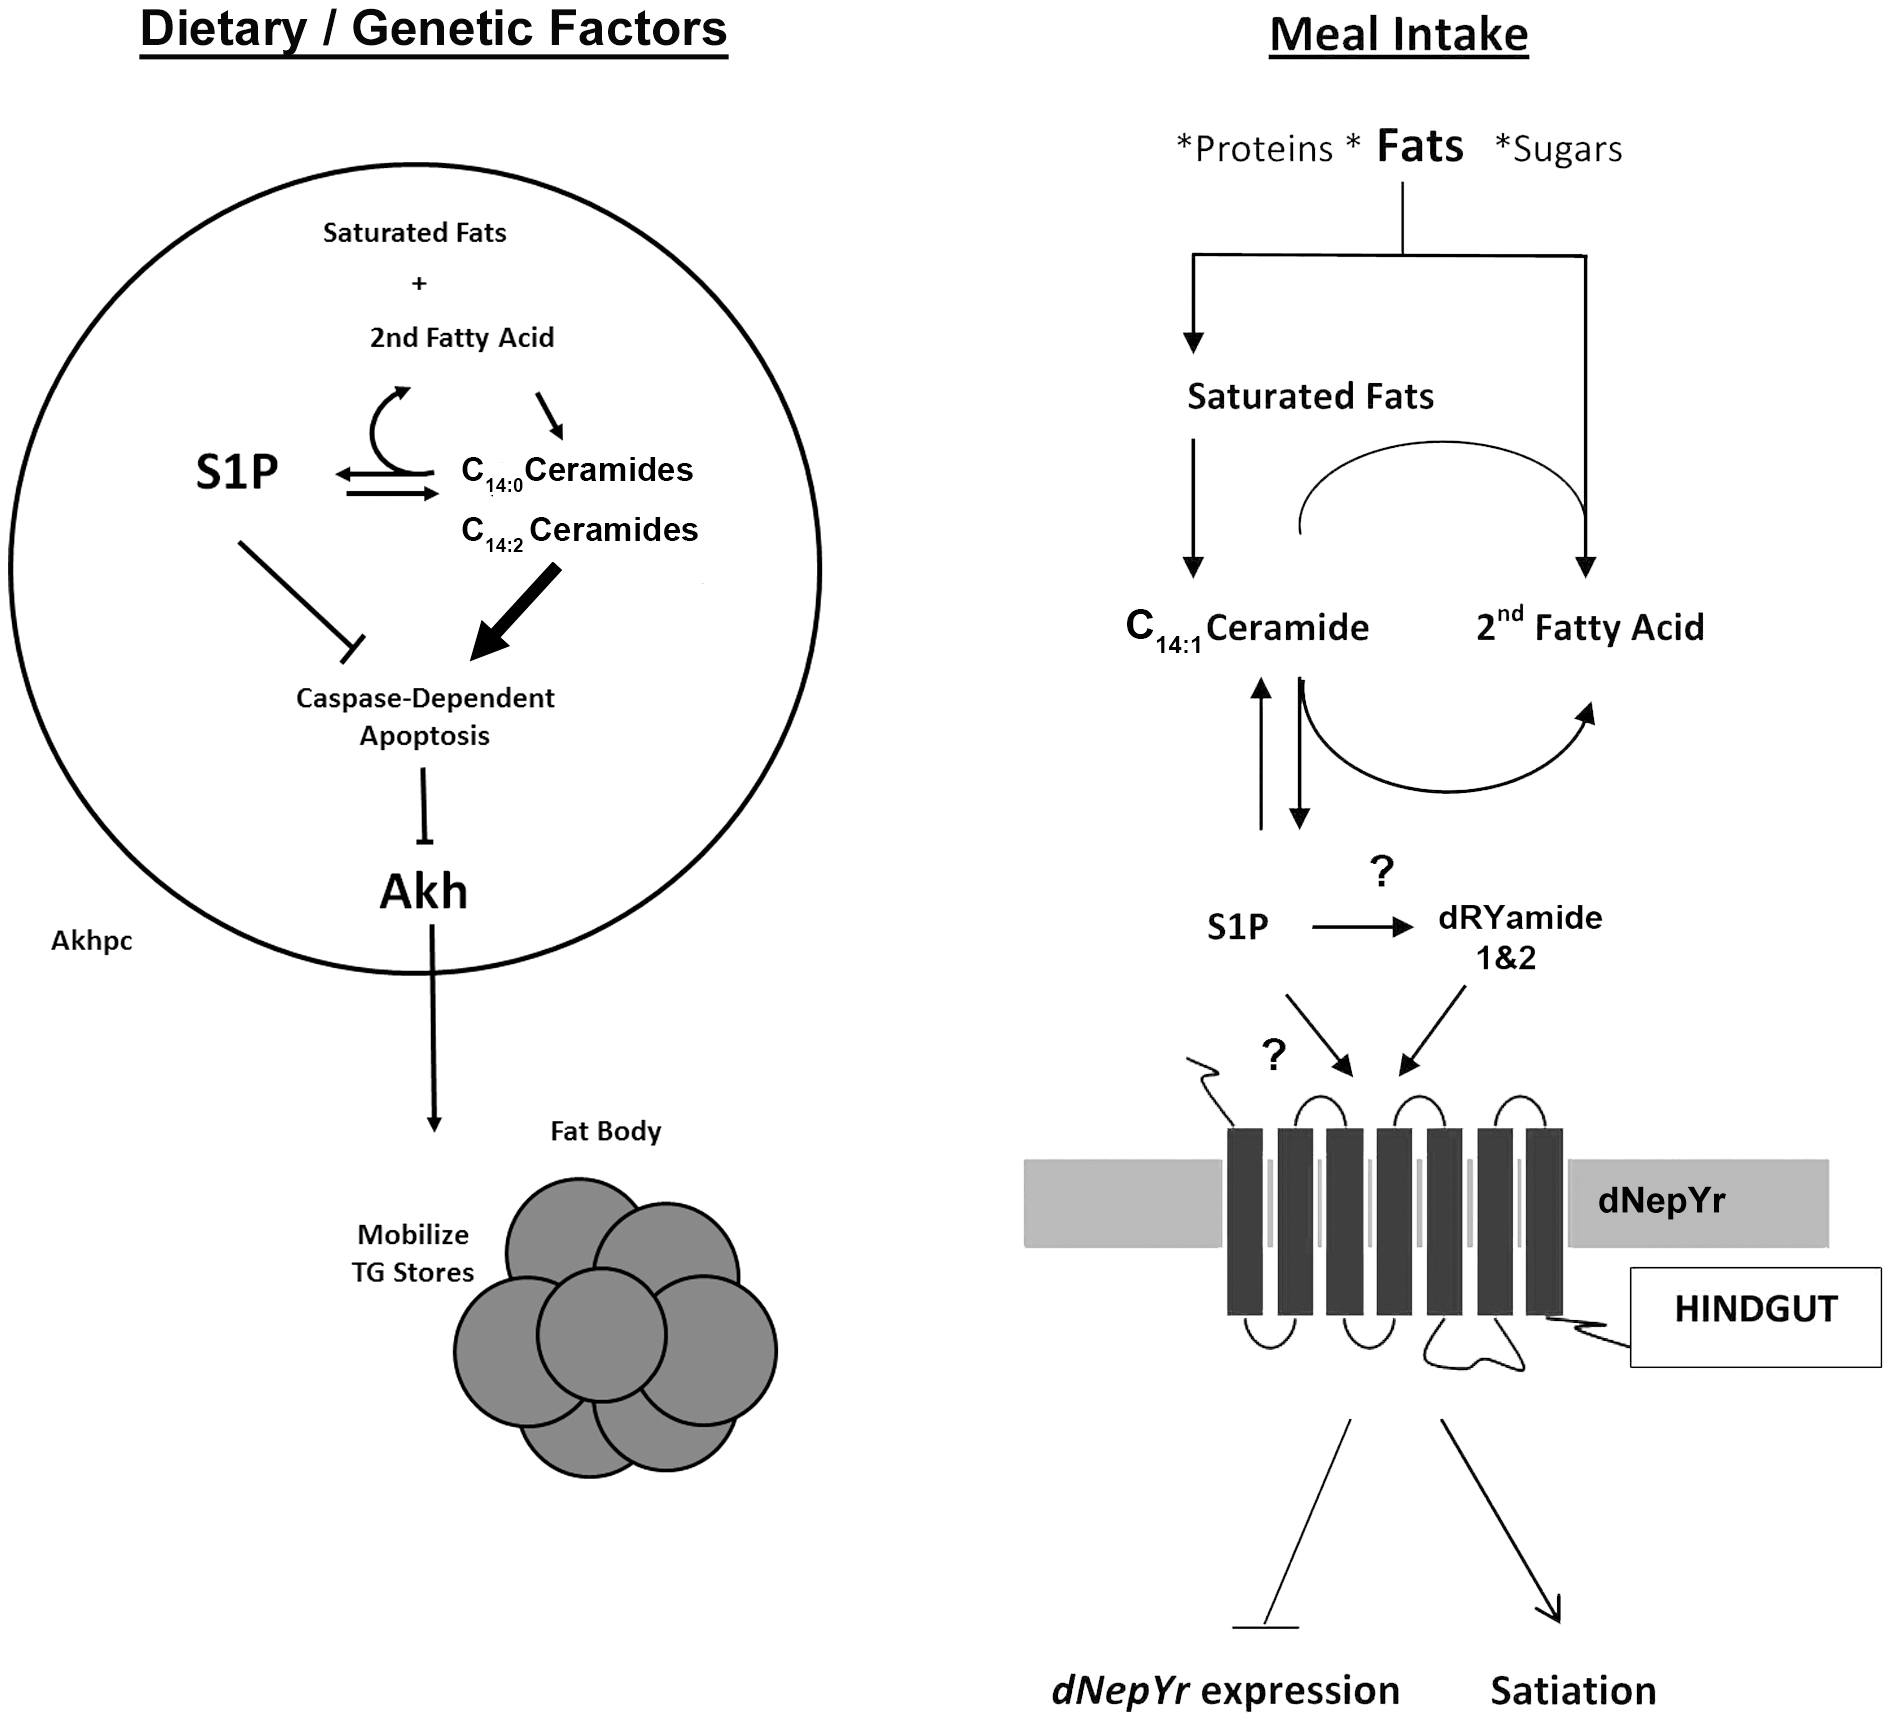 Sphingolipid regulation of caloric intake and fat mobilization.